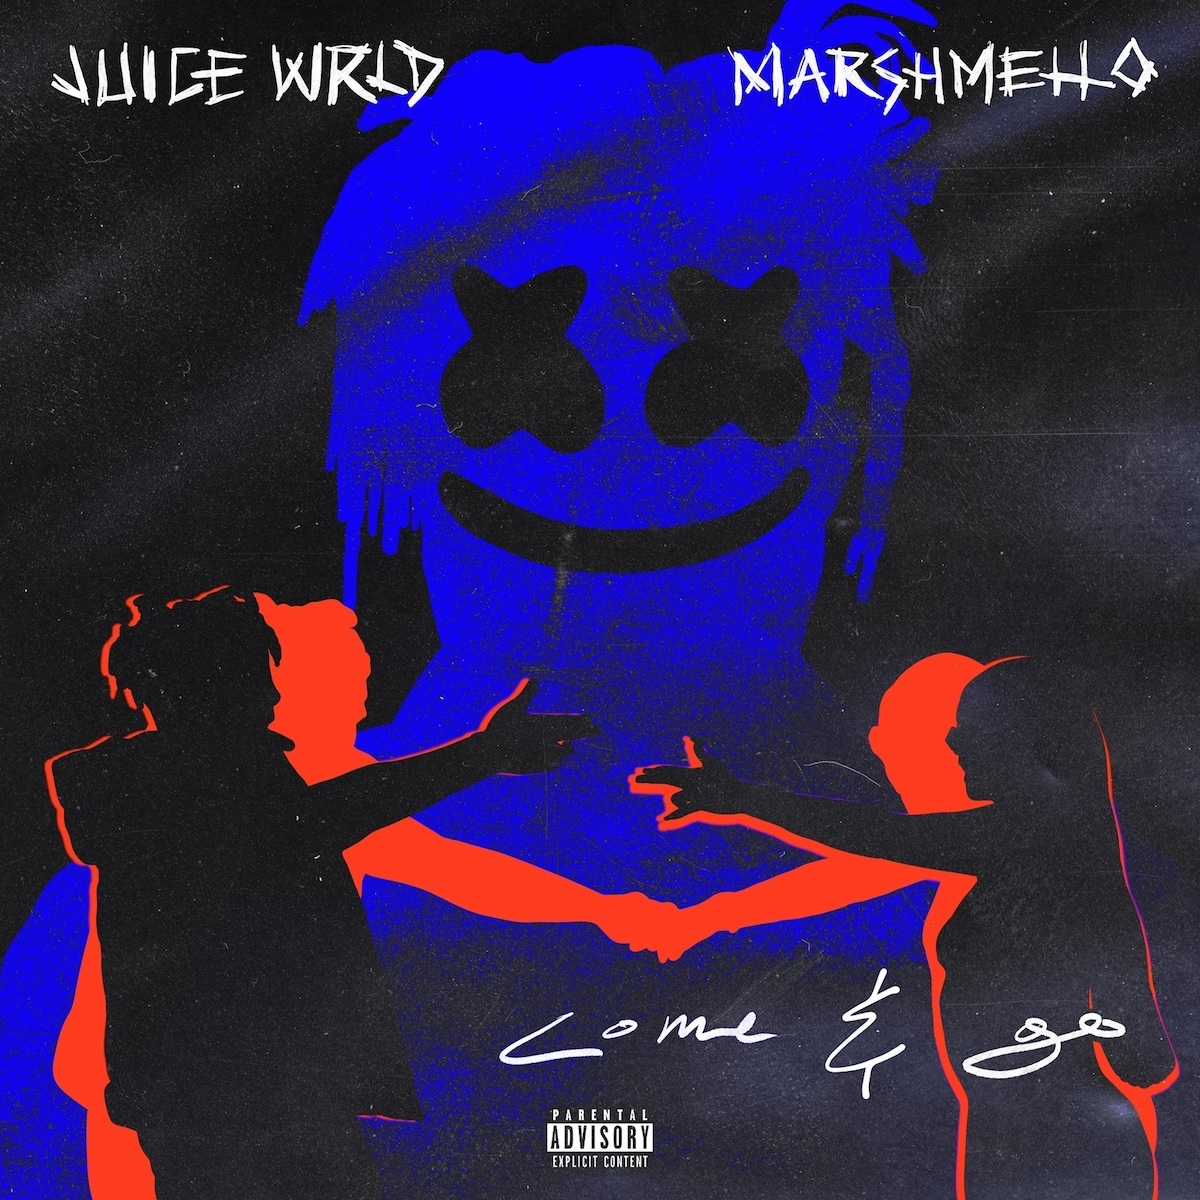 MUSIC TRIBE TV(7/22OA)リリース情報!JuiceWRLD&Marshmello『Come & Go』